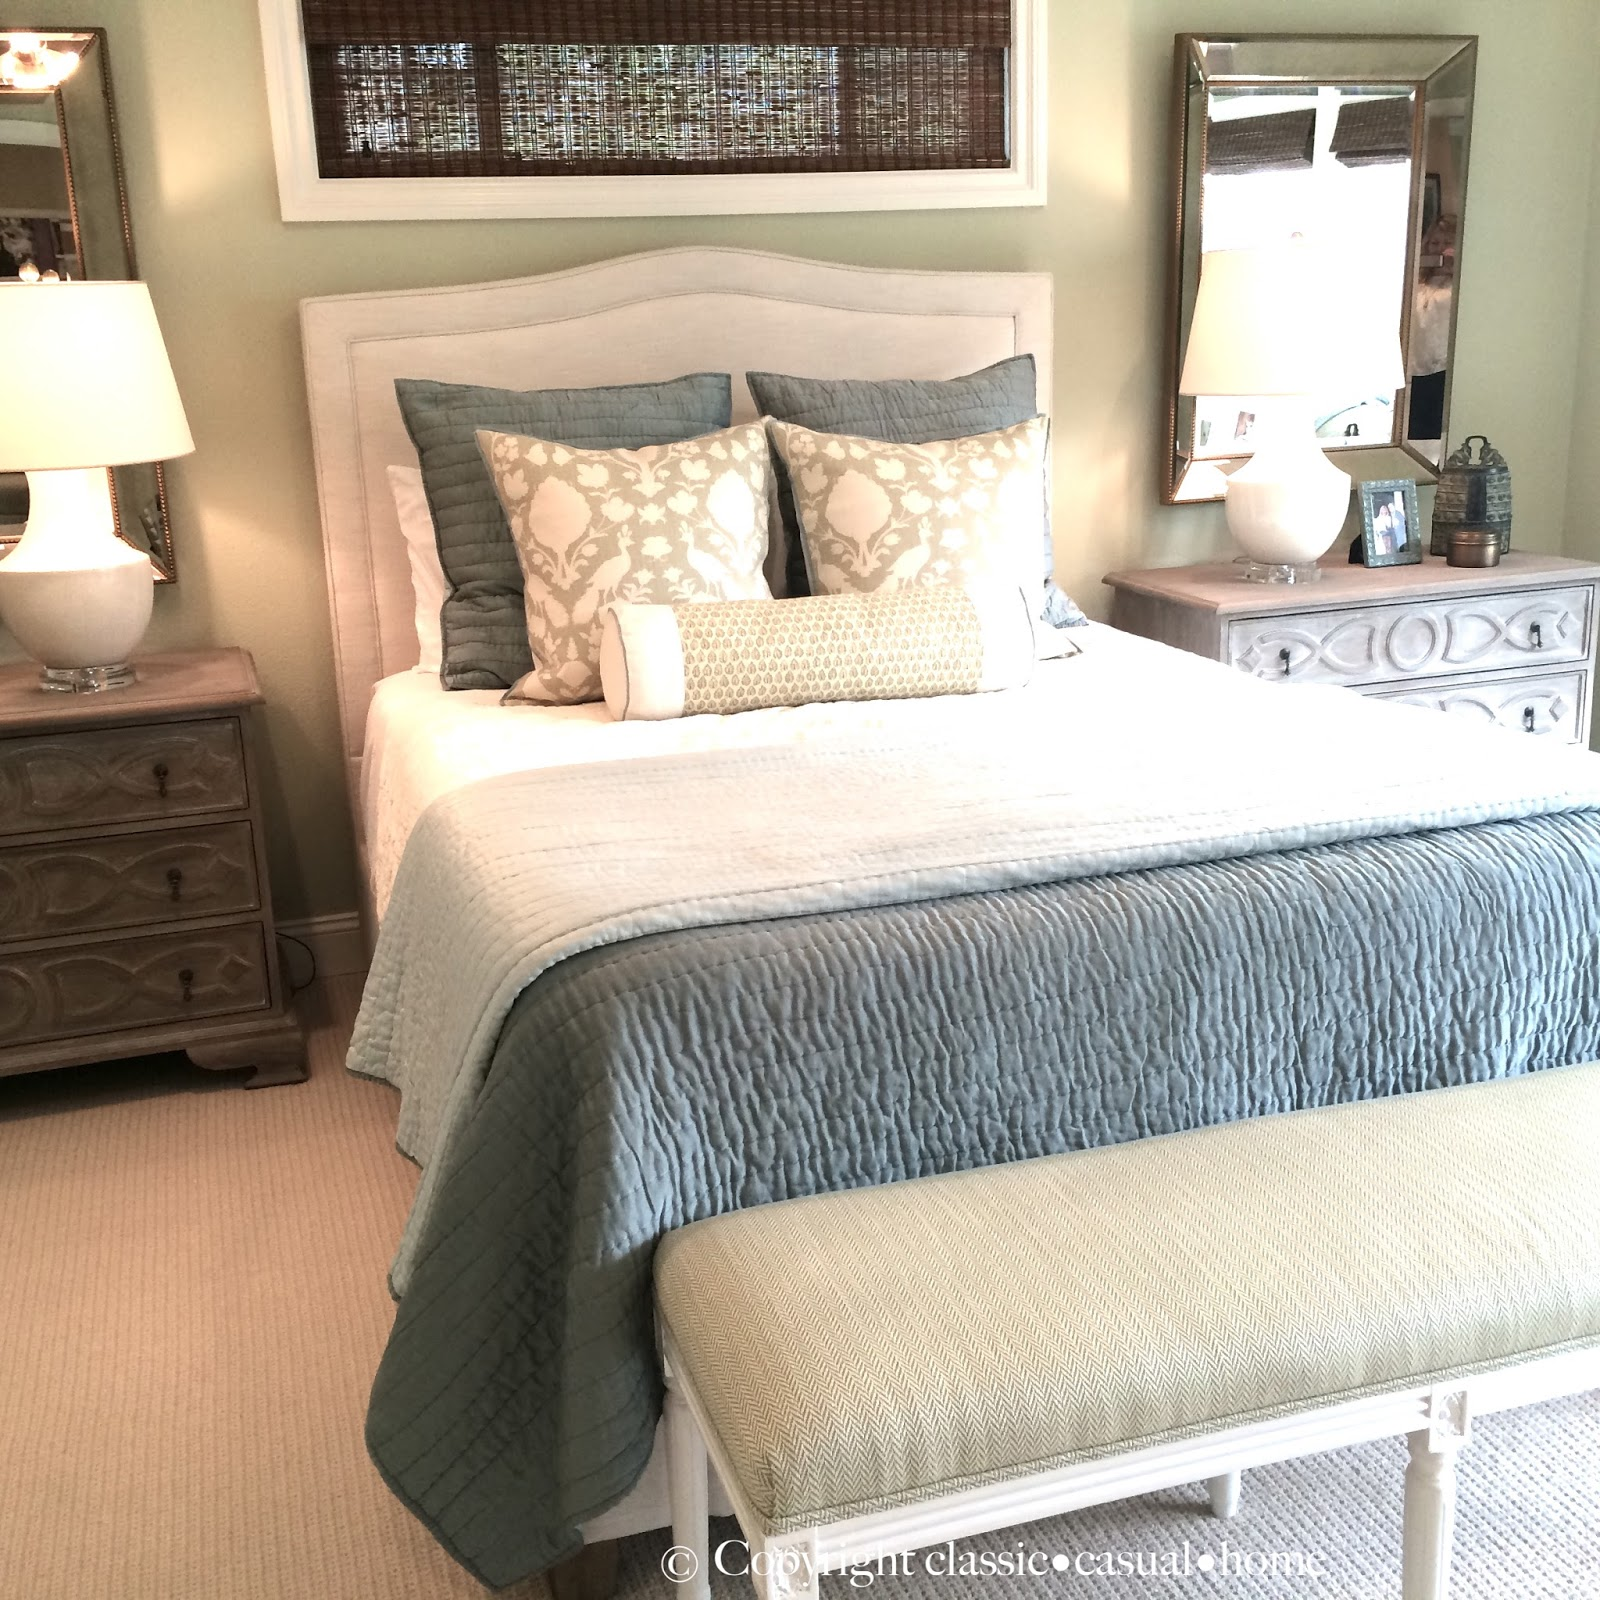 Bedrooms Pottery Barn Inspired: Classic • Casual • Home: Soft Green And Aqua Blue Master